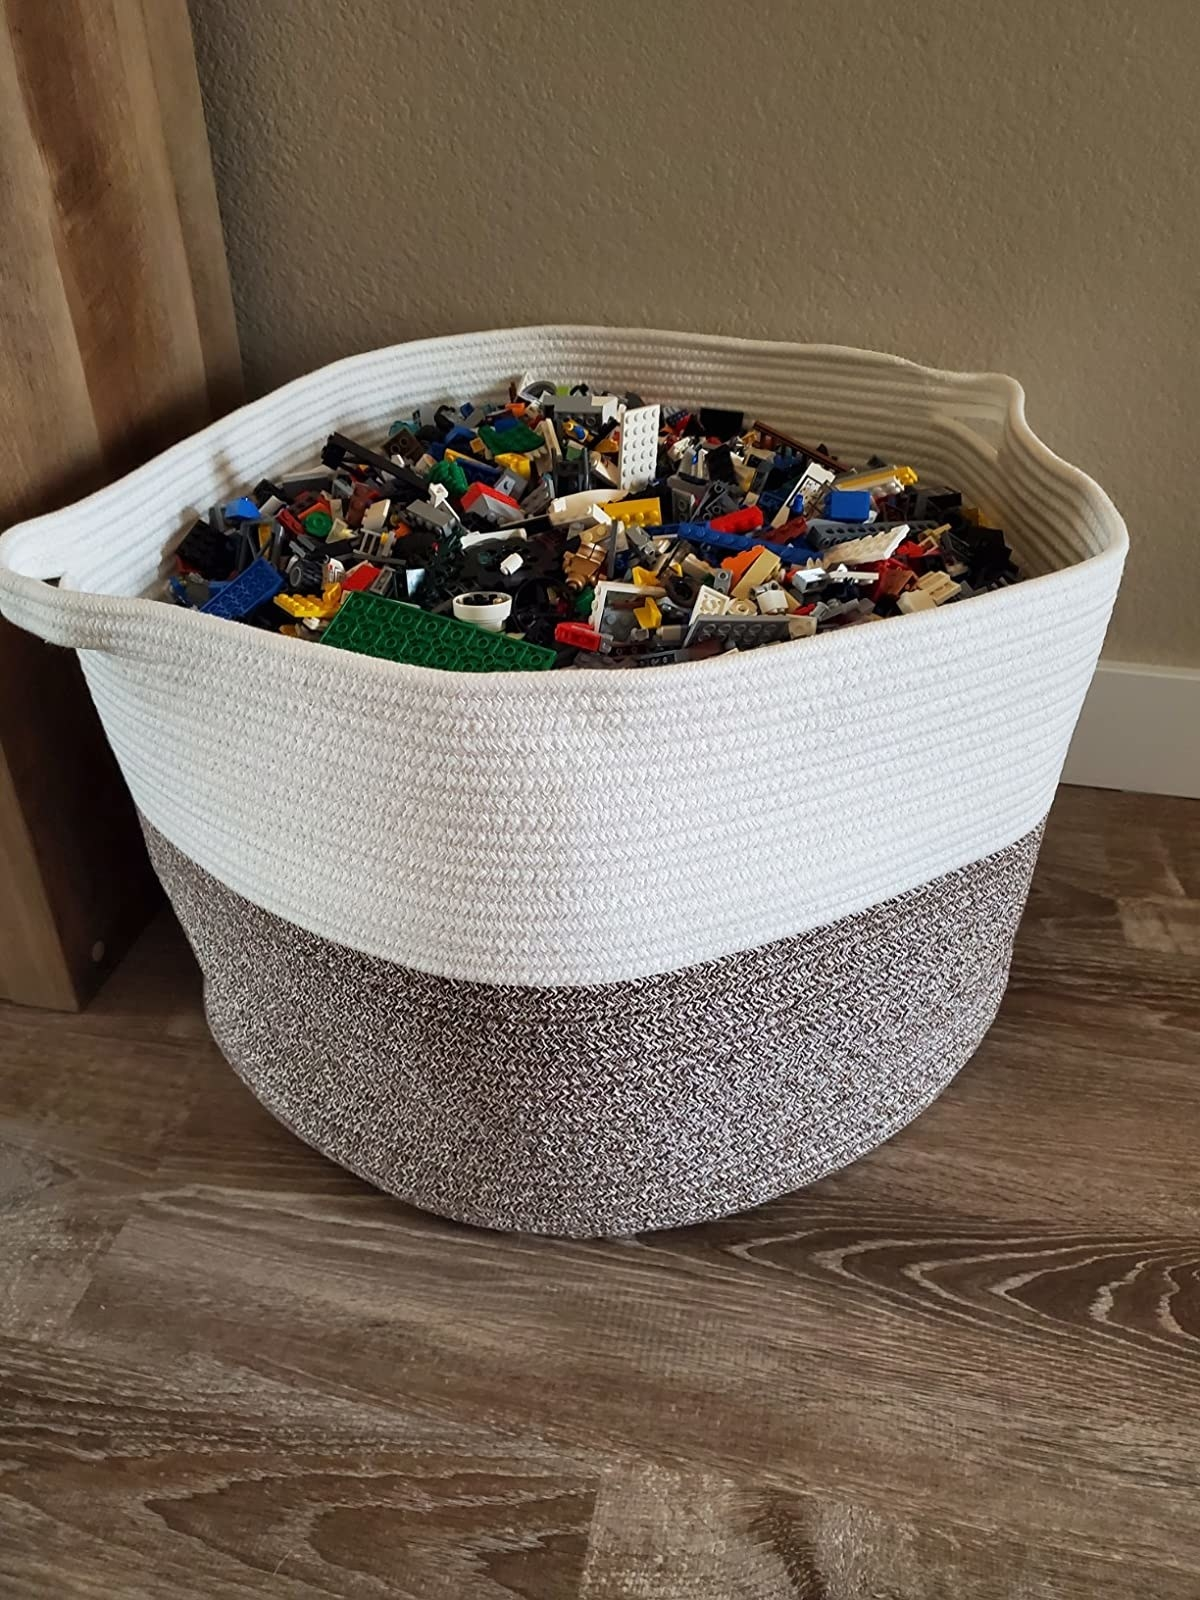 reviewer image of their basket filled to the brim with LEGO parts